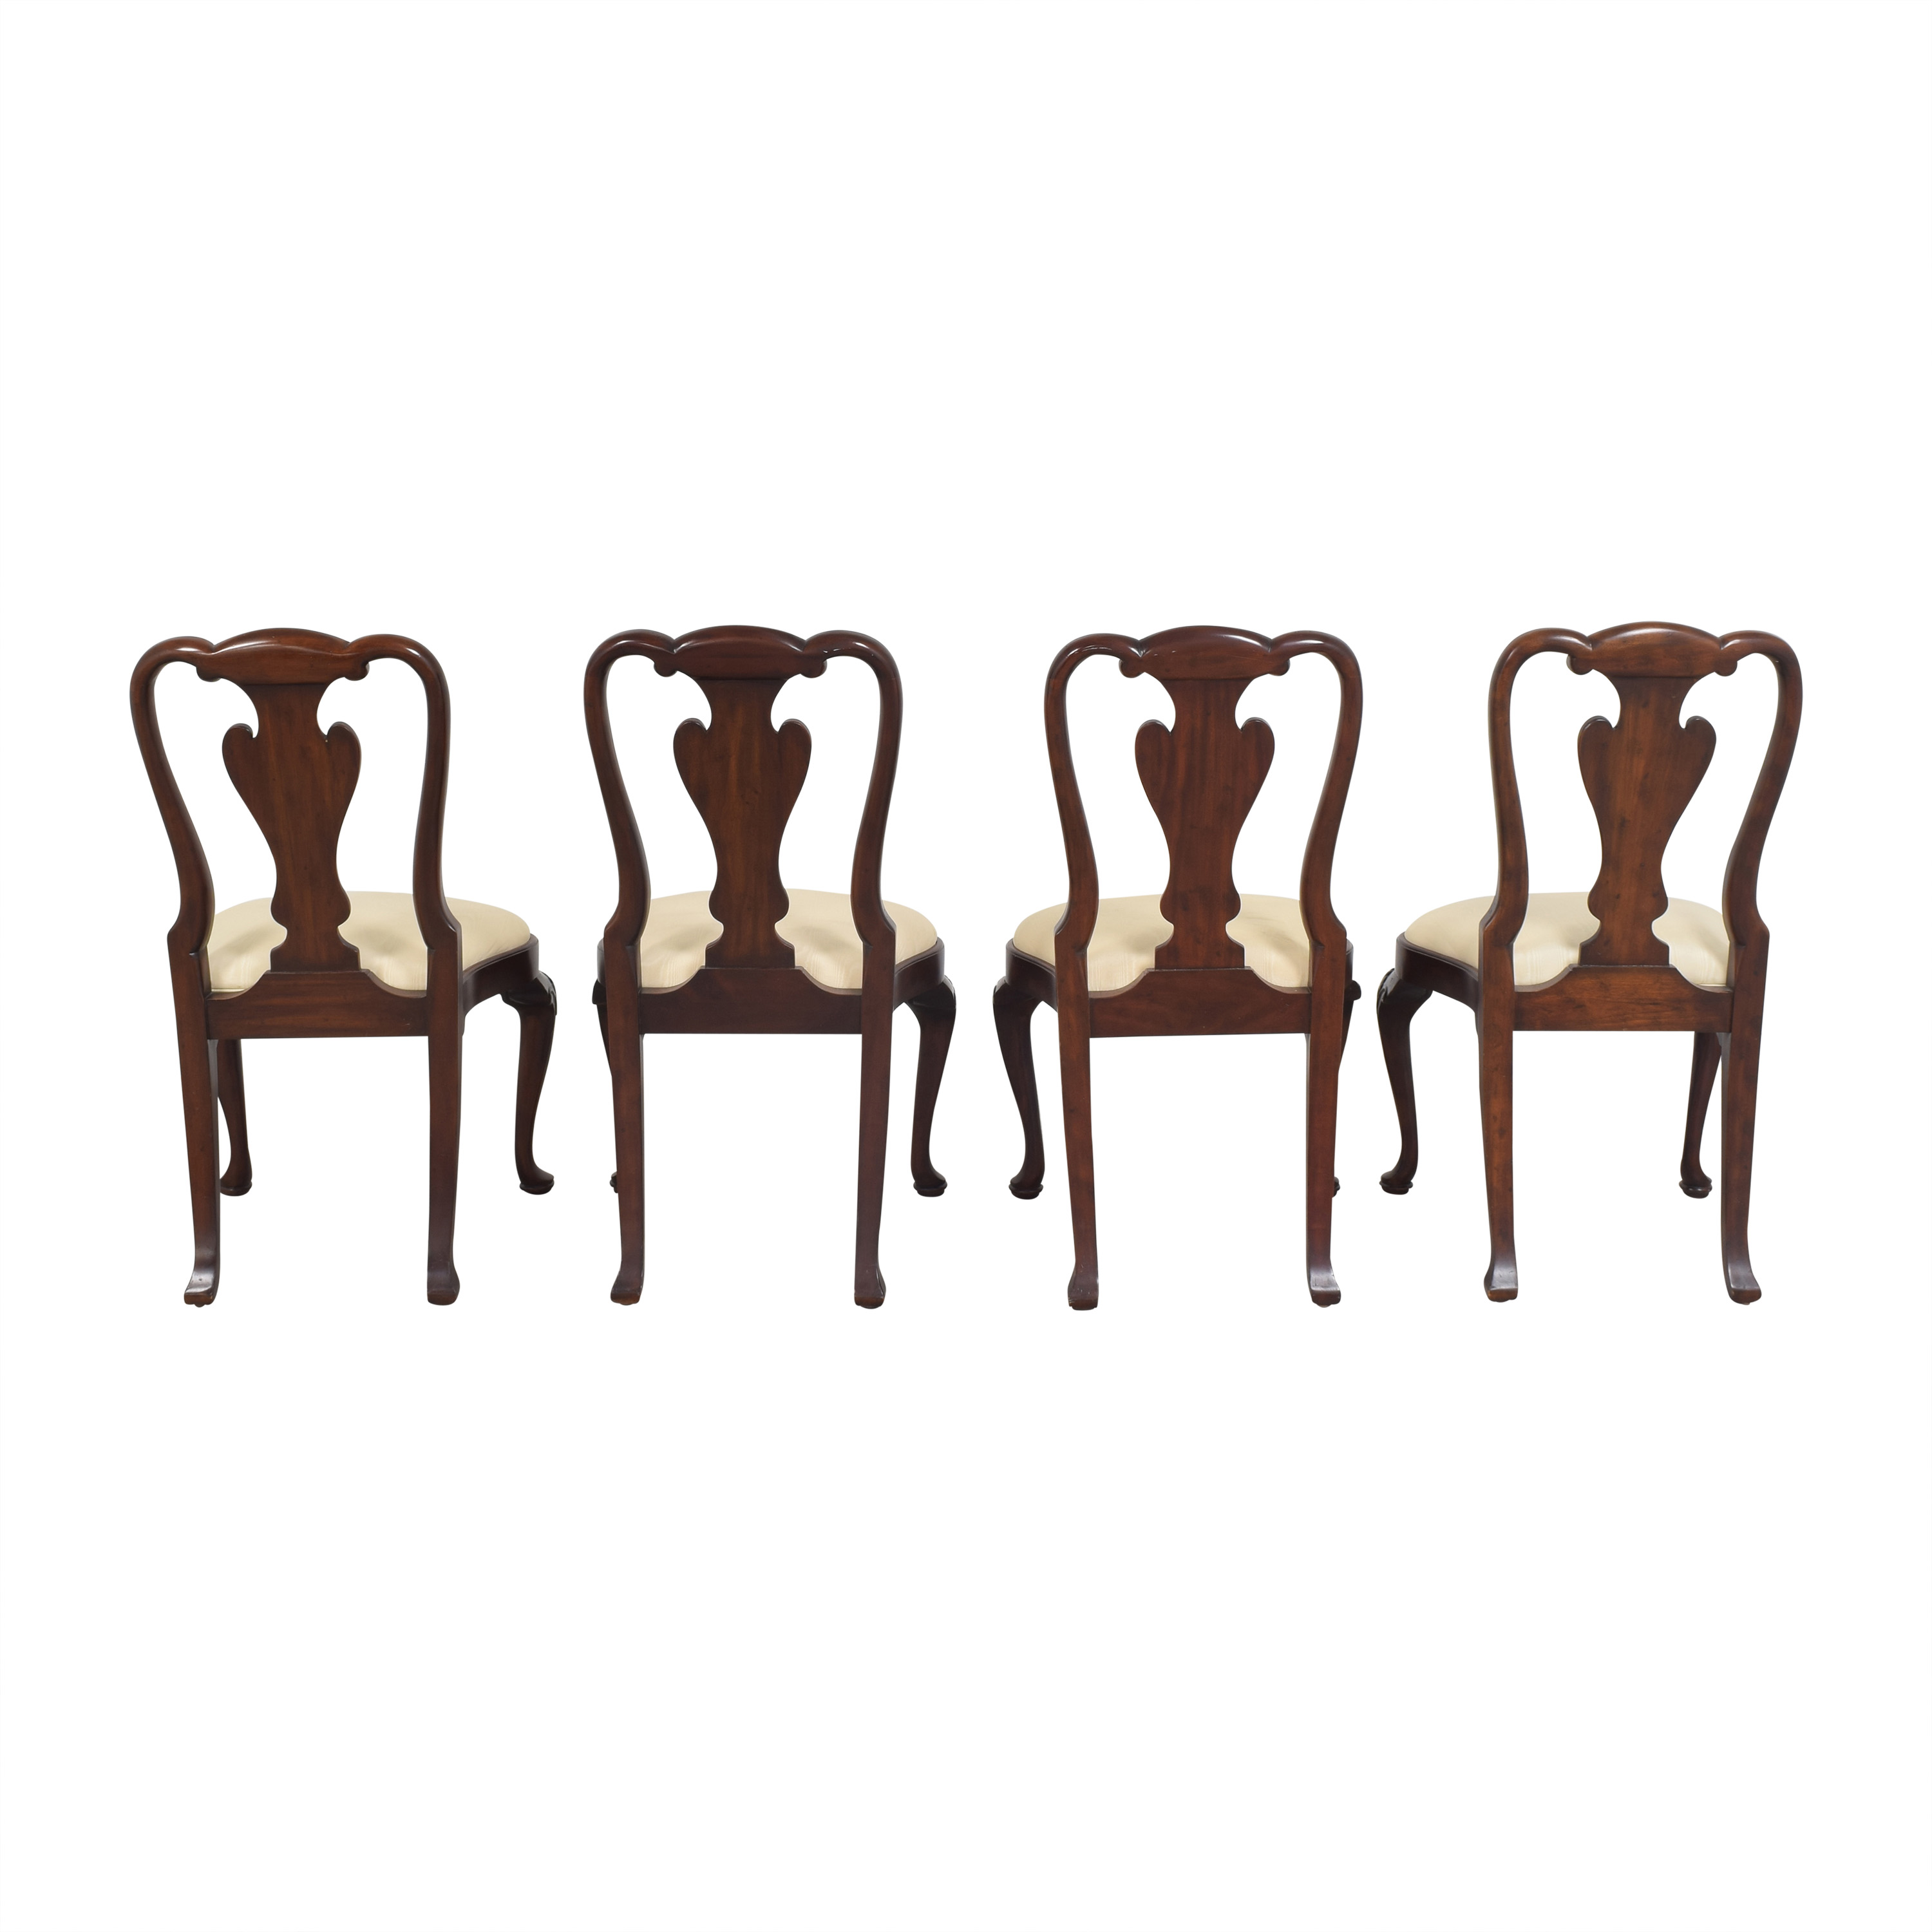 buy Maitland-Smith Maitland-Smith Regency Dining Chairs online